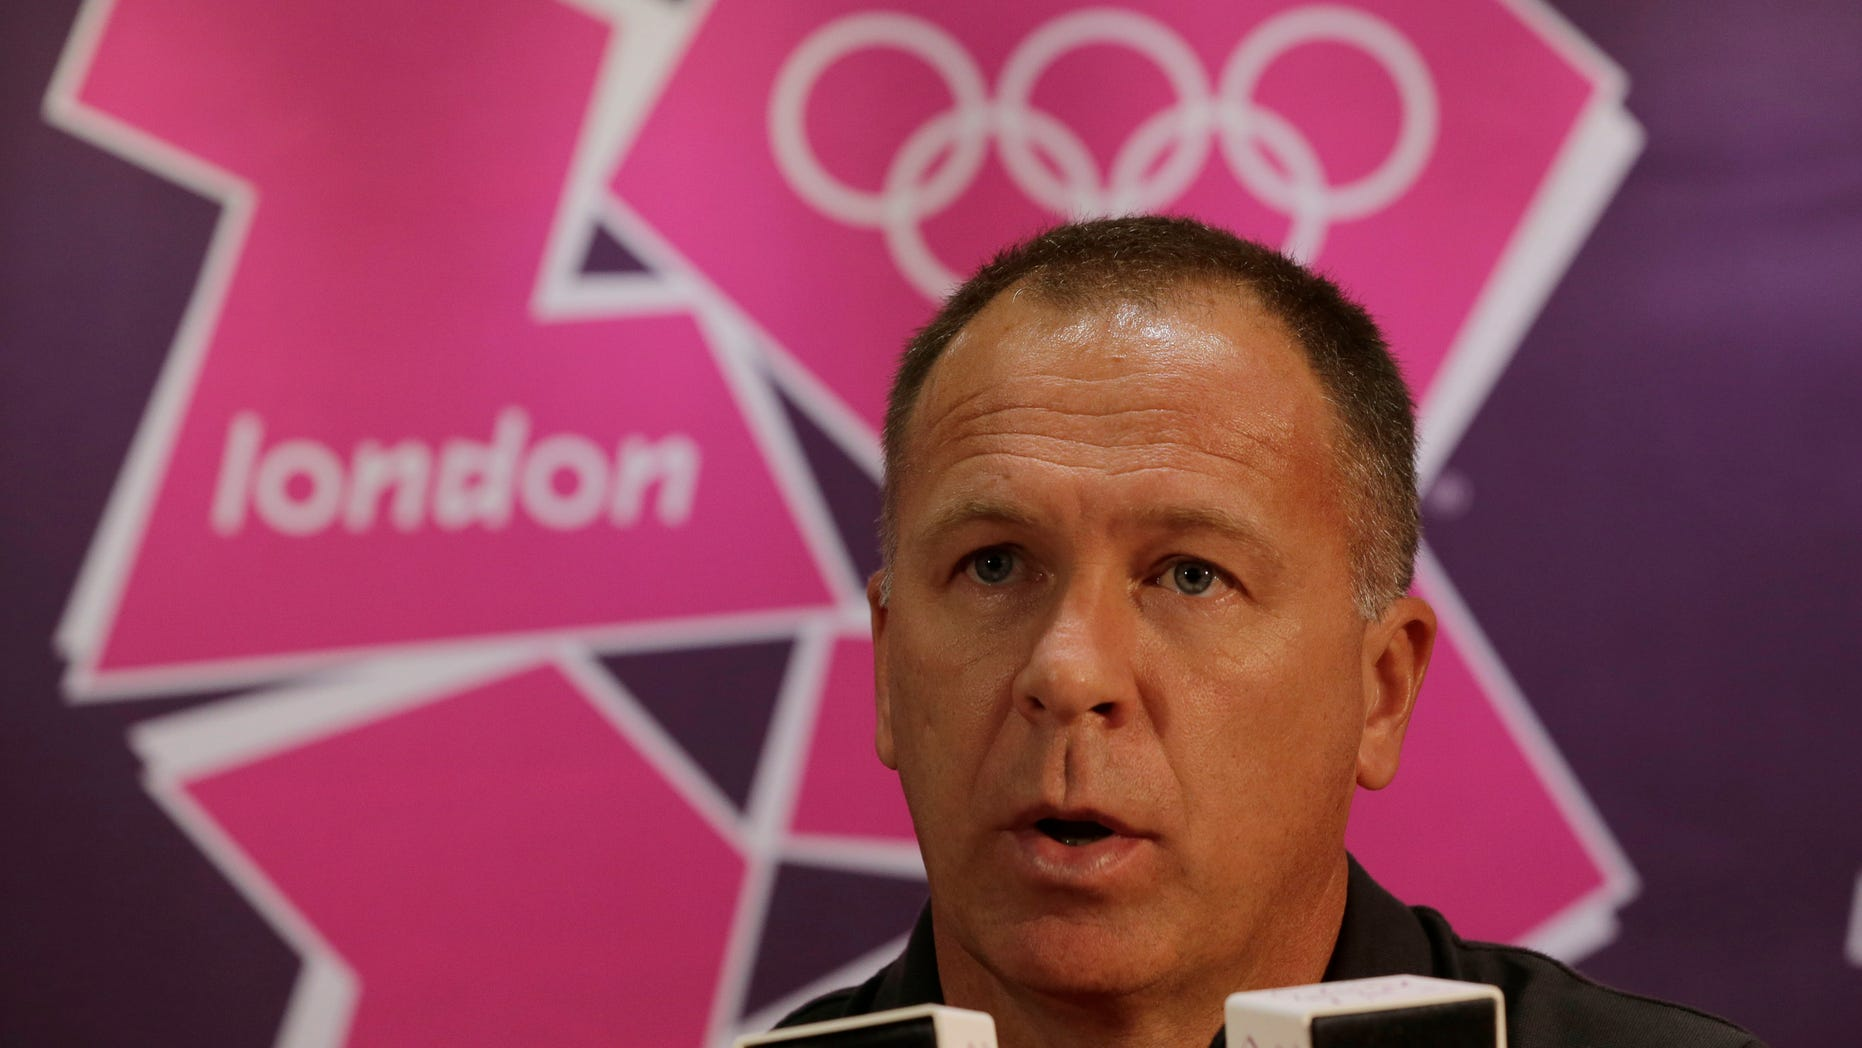 July 24, 2012: Mano Menezes, head coach for the Brazilian men's soccer team talks to reporters during a press conference at the Millennium stadium, in Cardiff, Wales ahead of the 2012 Summer Olympics.